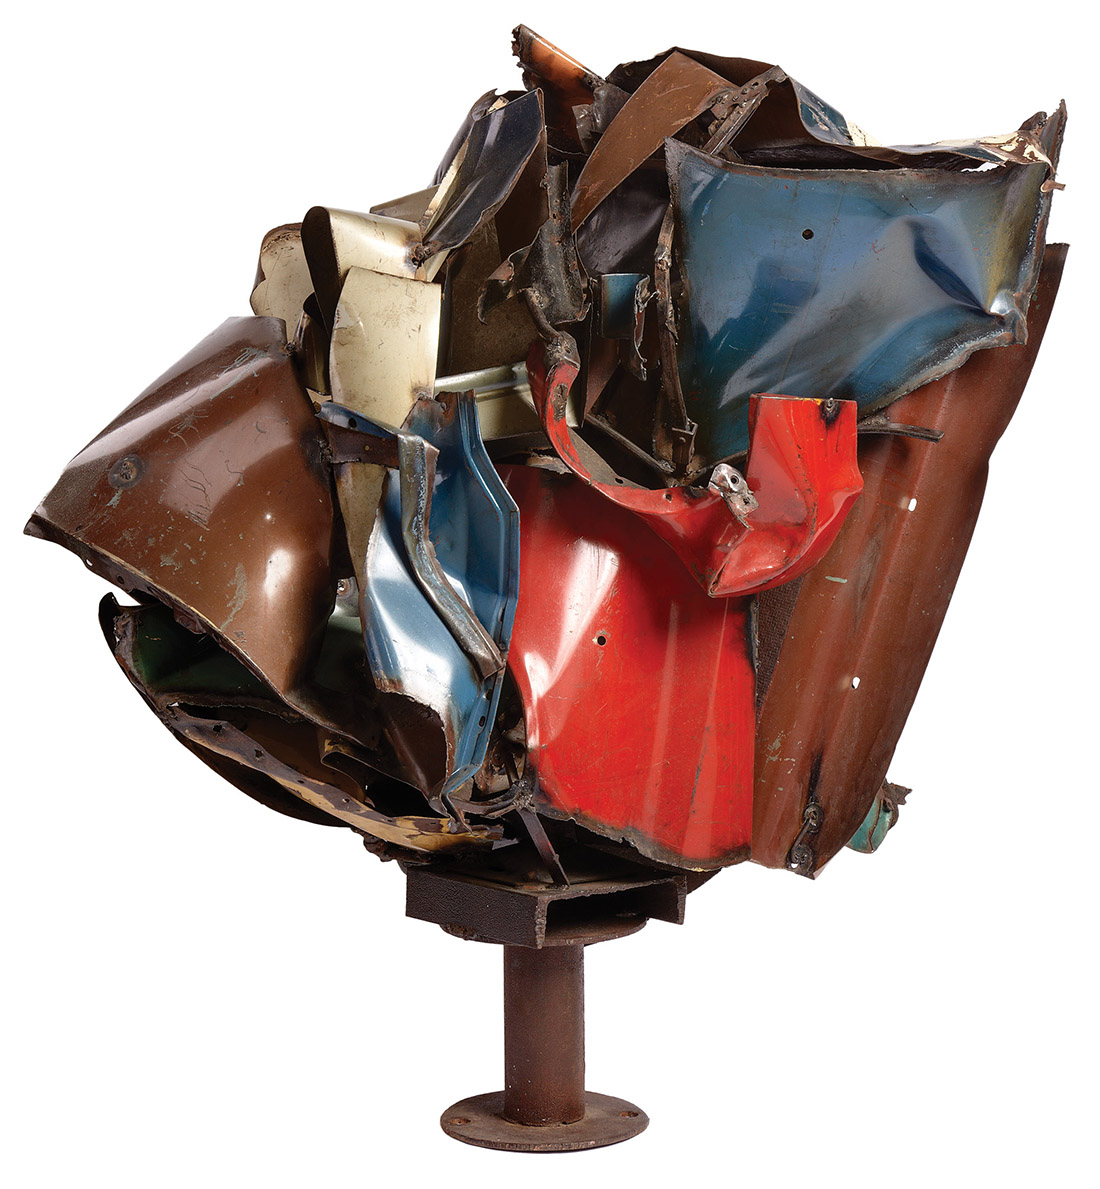 """""""Maz"""" by John Chamberlain, a 1960 sculpture of welded and painted steel, was loaned to the Guggenheim Museum in 2012 for a Chamberlain retrospective exhibit."""